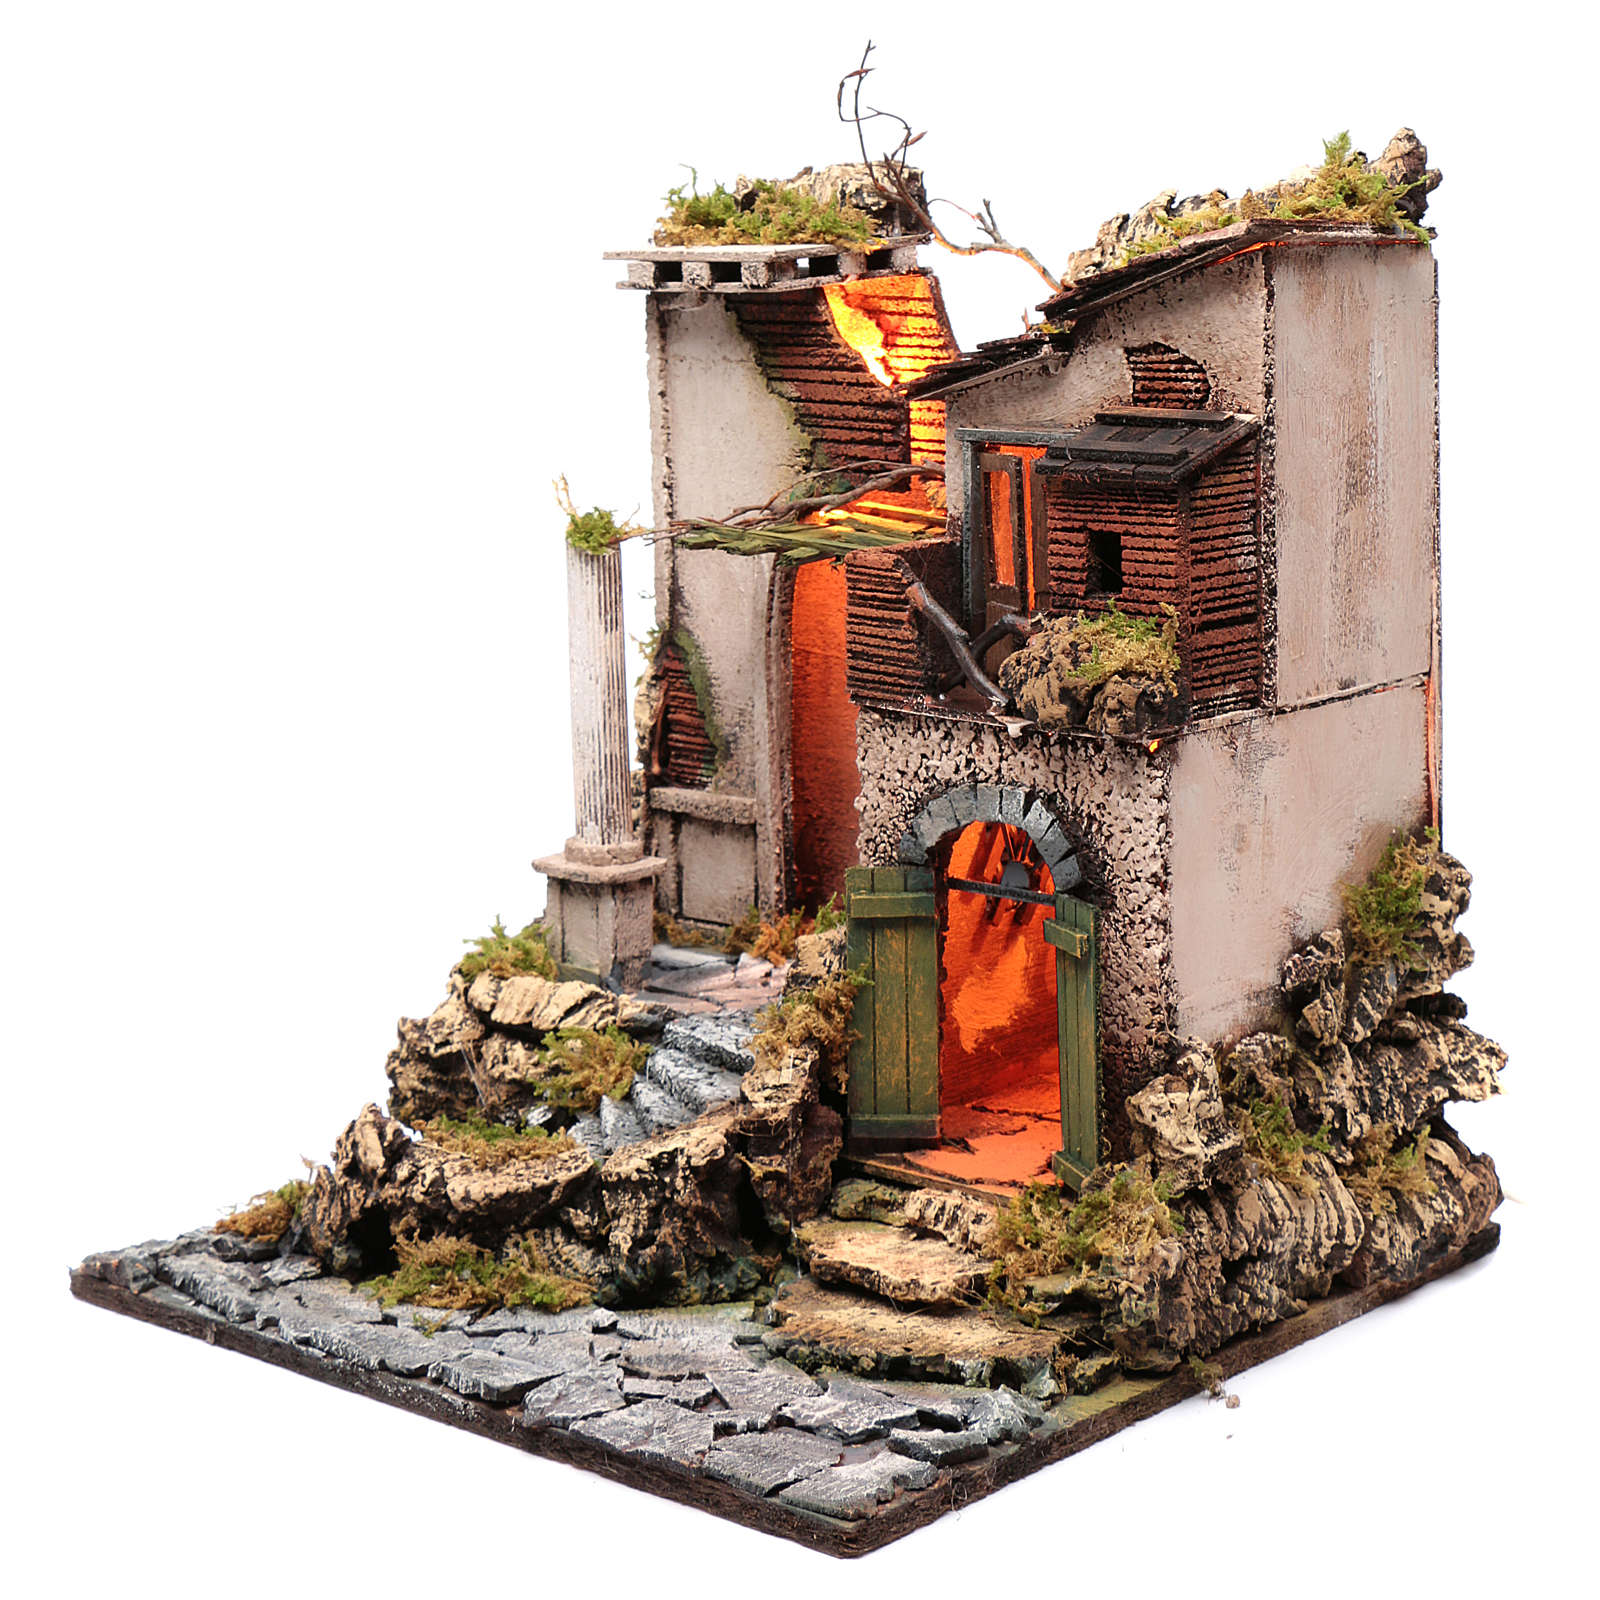 Neapolitan nativity scene setting temple ruin 45x40x50 cm 4